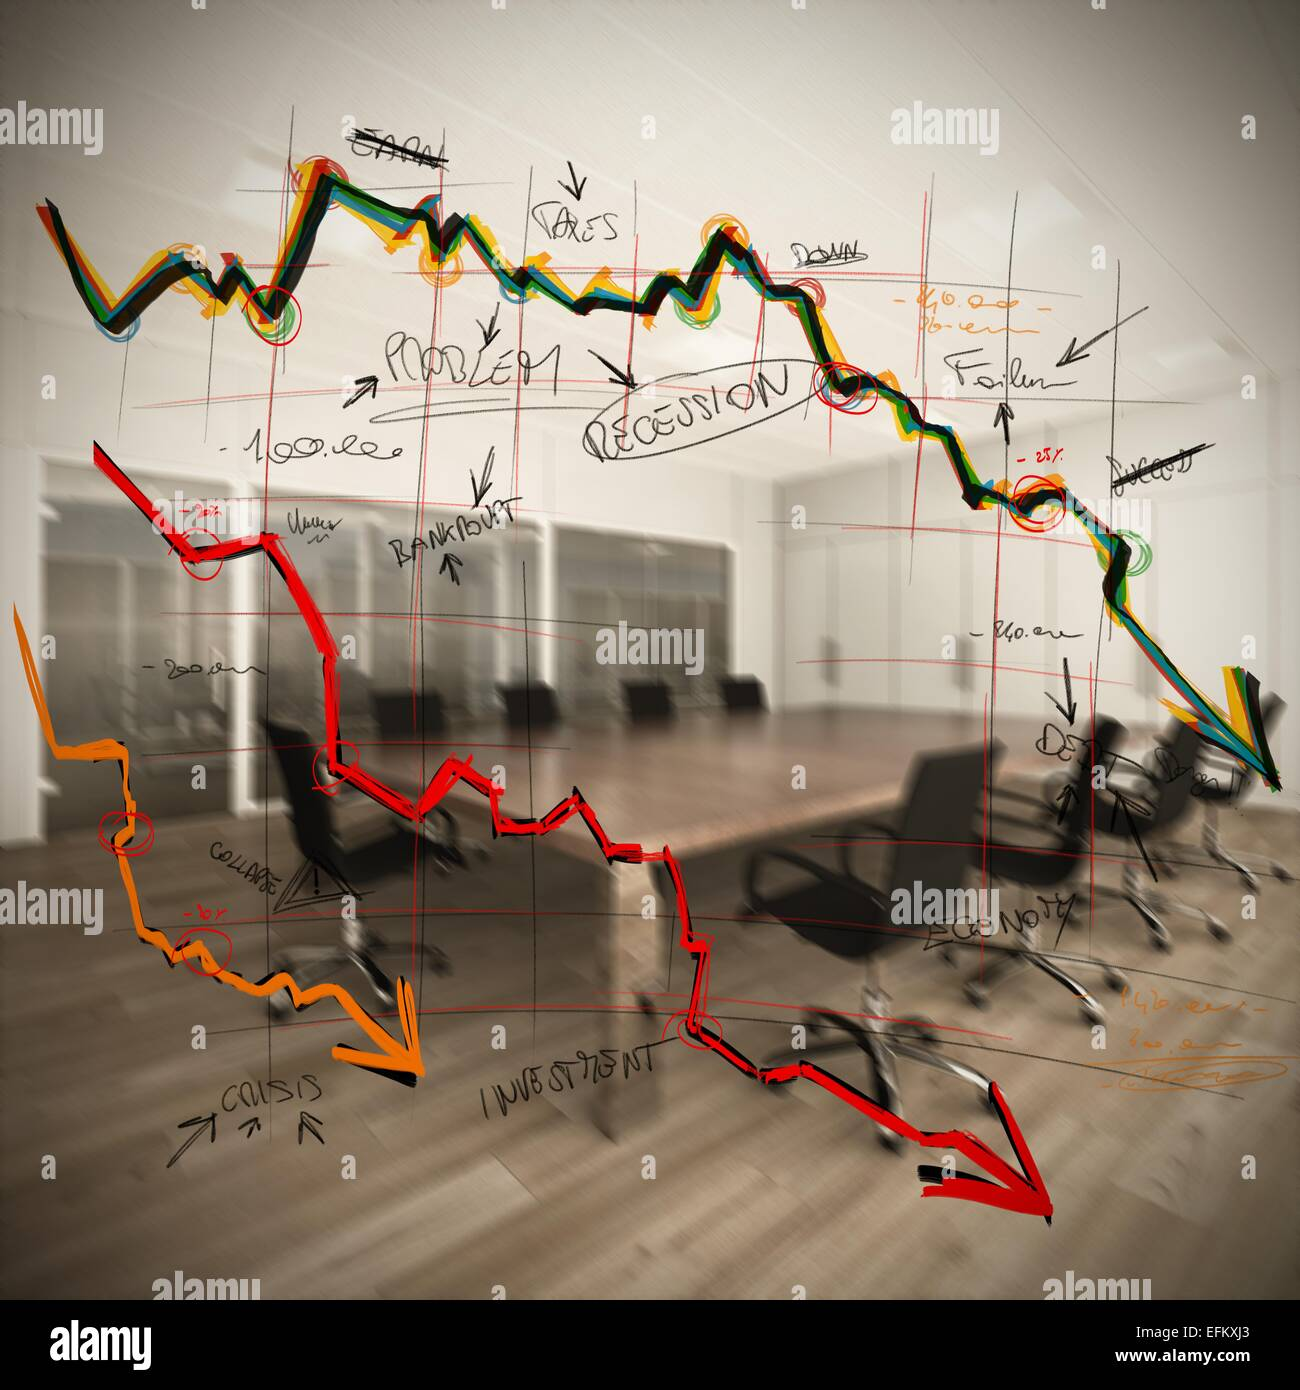 Collapse and decrease - Stock Image